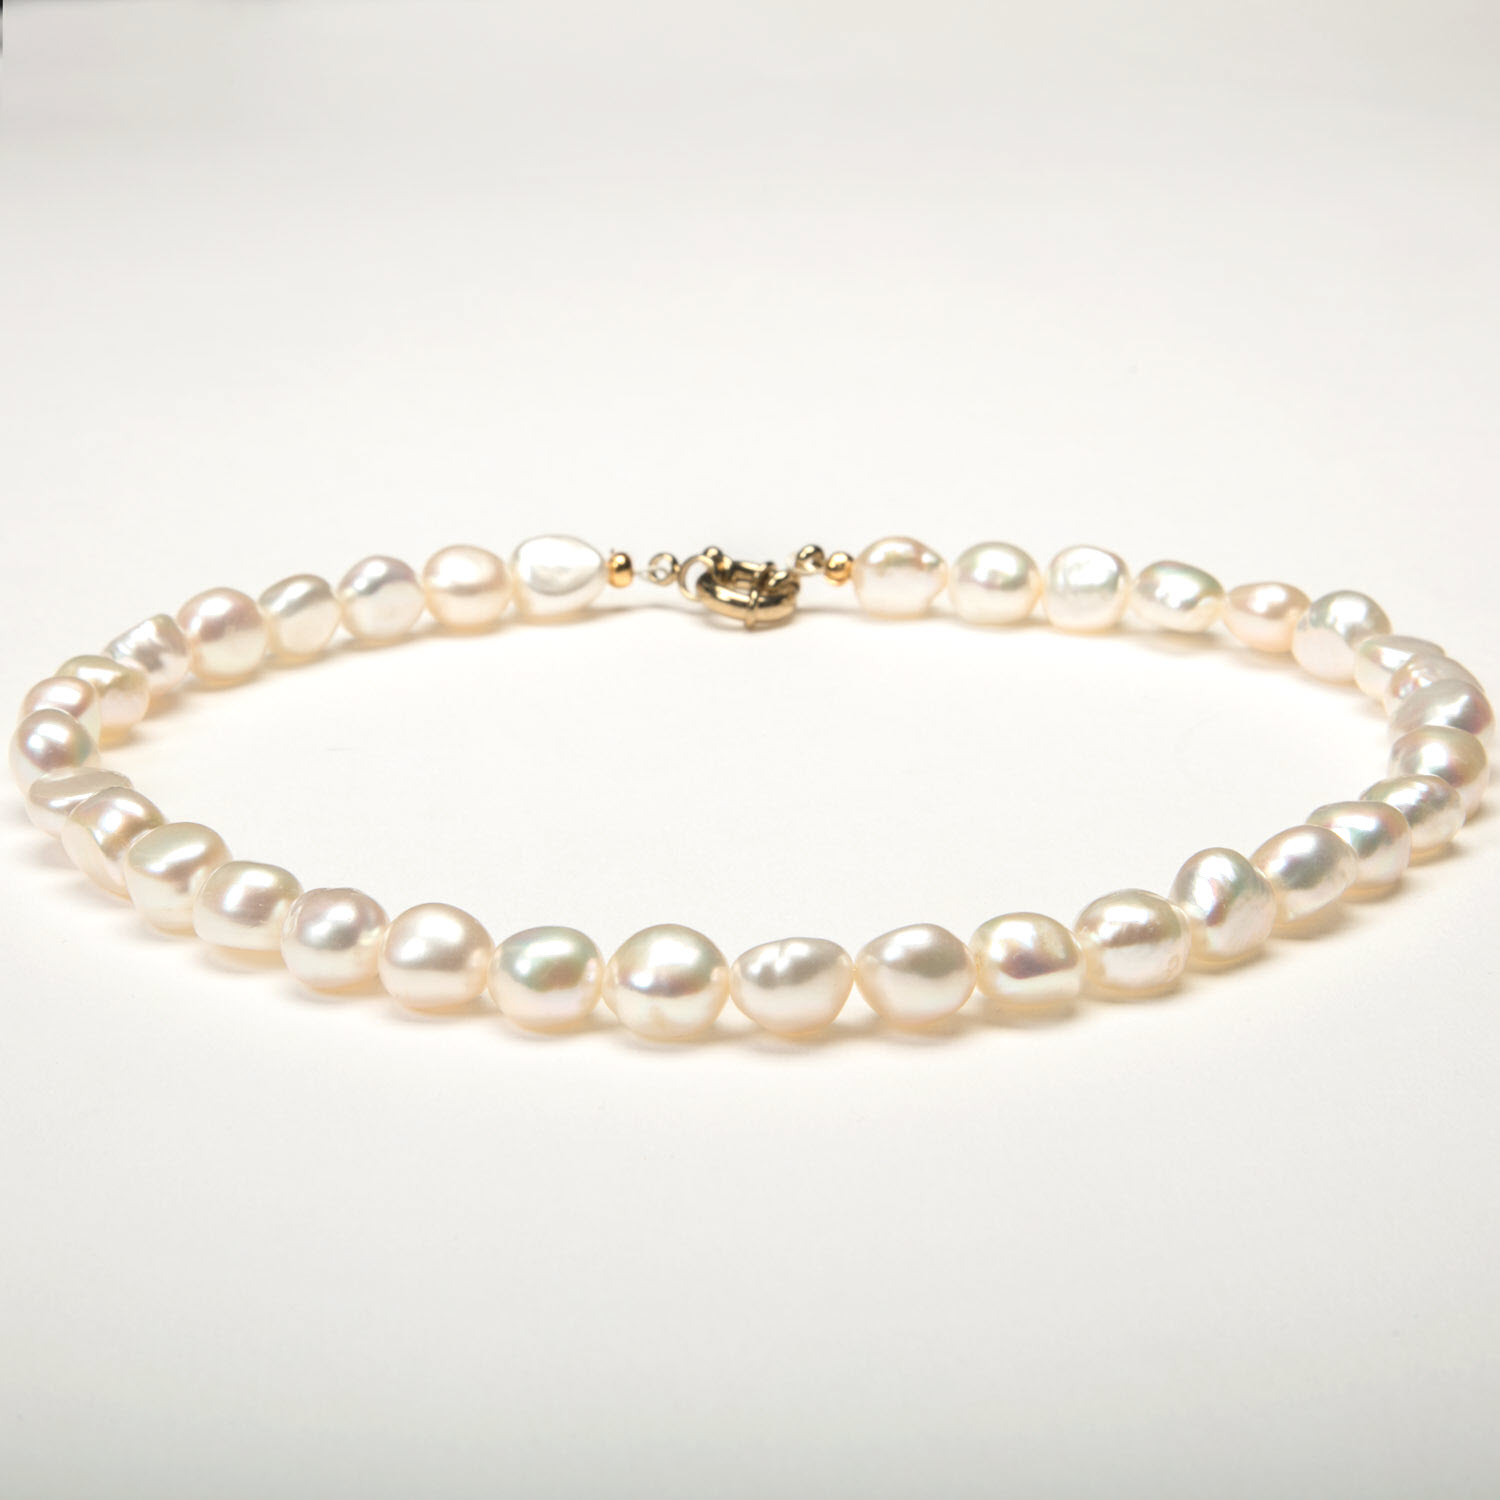 White Baroque Pearl Necklace - Luxe AAA Standard